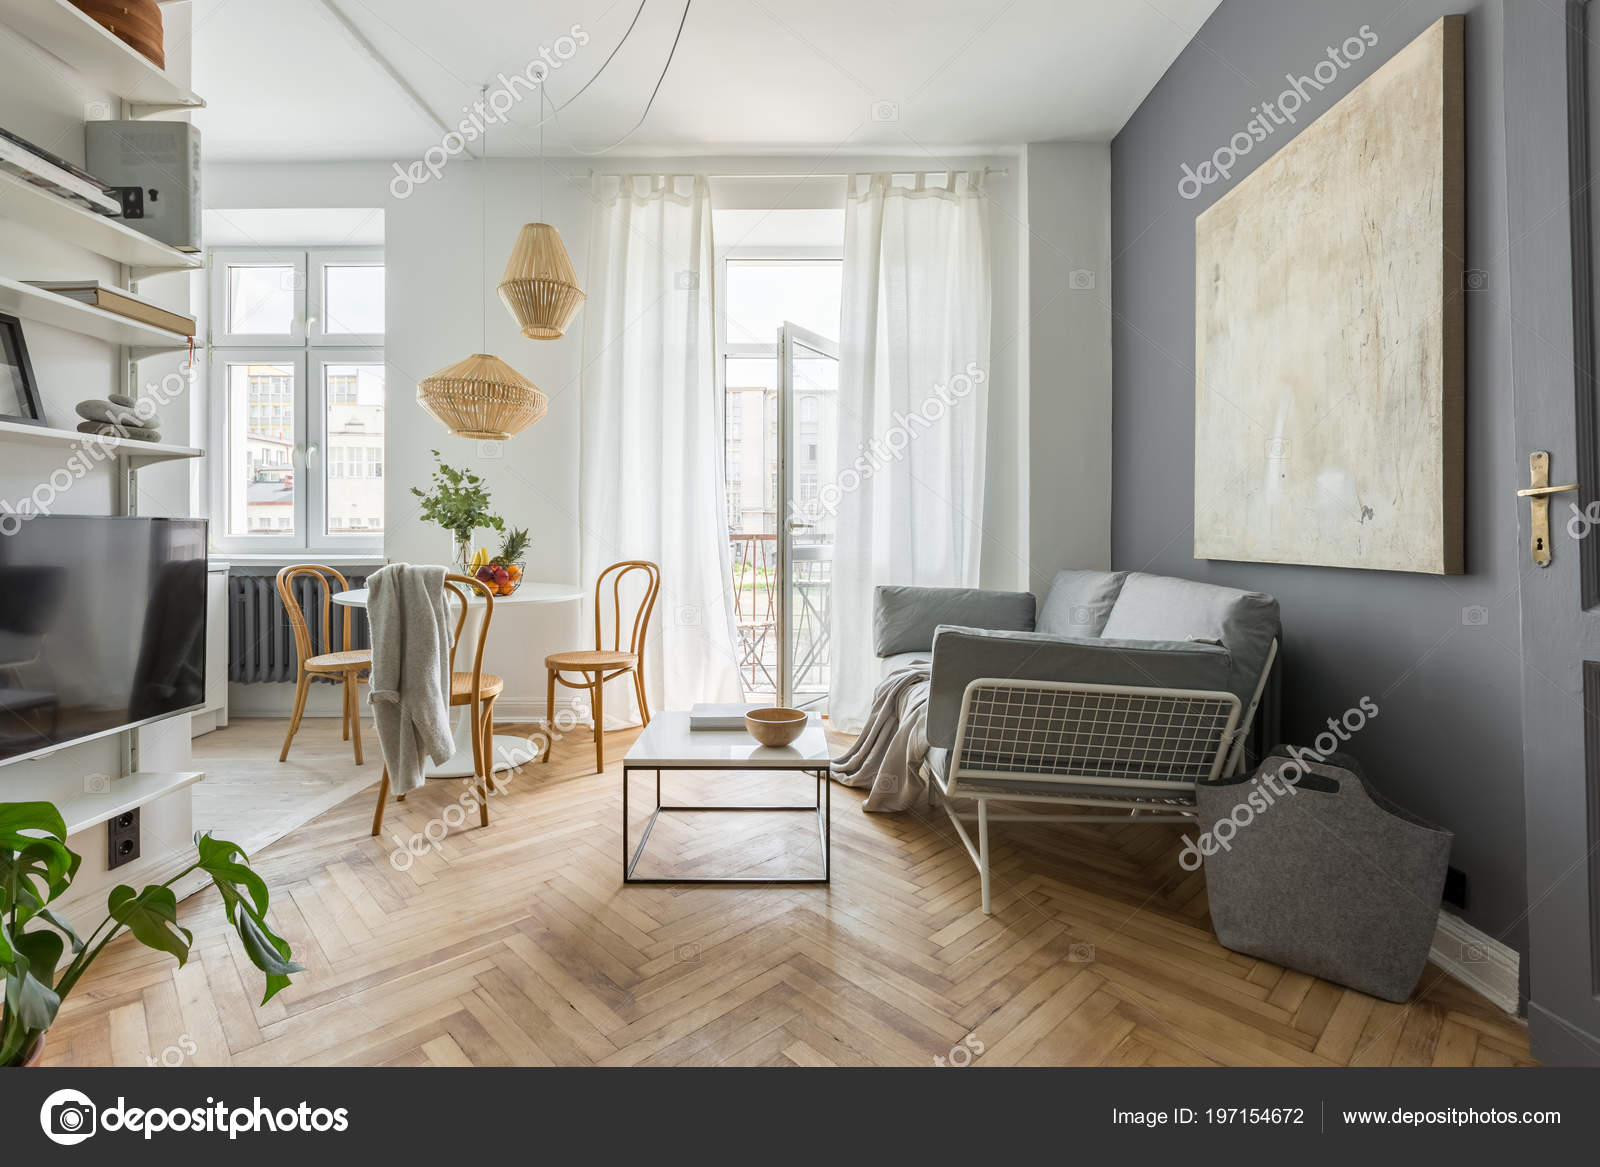 Cozy Home Scandinavian Style Living Room Stock Photo In4mal